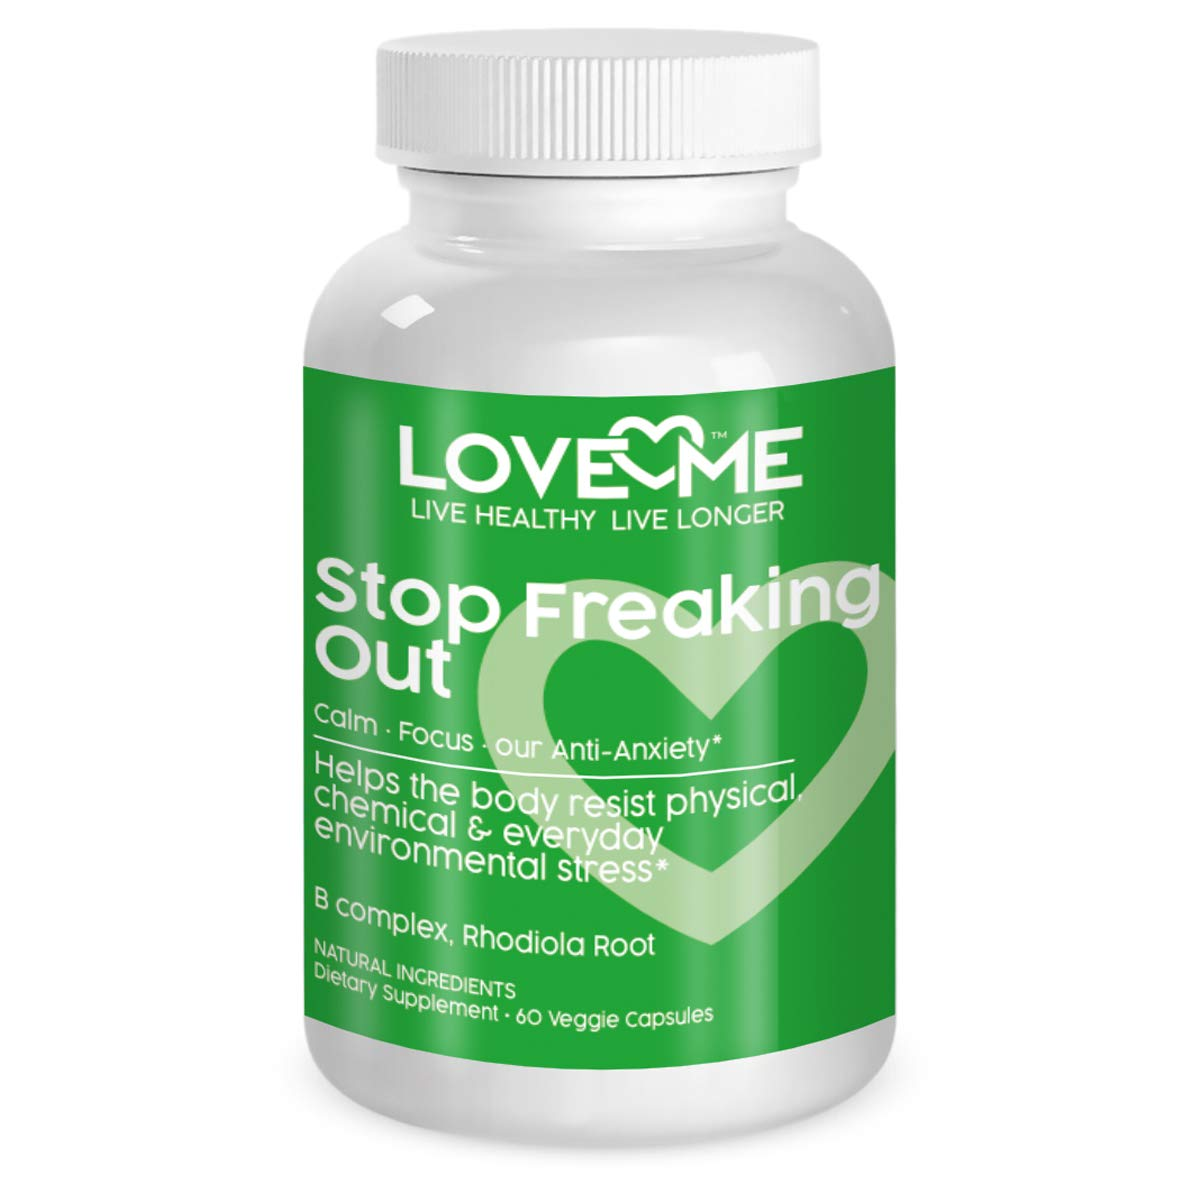 Love Me Nutrition – Stop Freaking Out – Anti-Anxiety Stress Formula Men Woman. Supports Peaceful Mind Body Soul- Serotonin Level Increase Natural No Artificial Ingredients 60 Vegi Caps